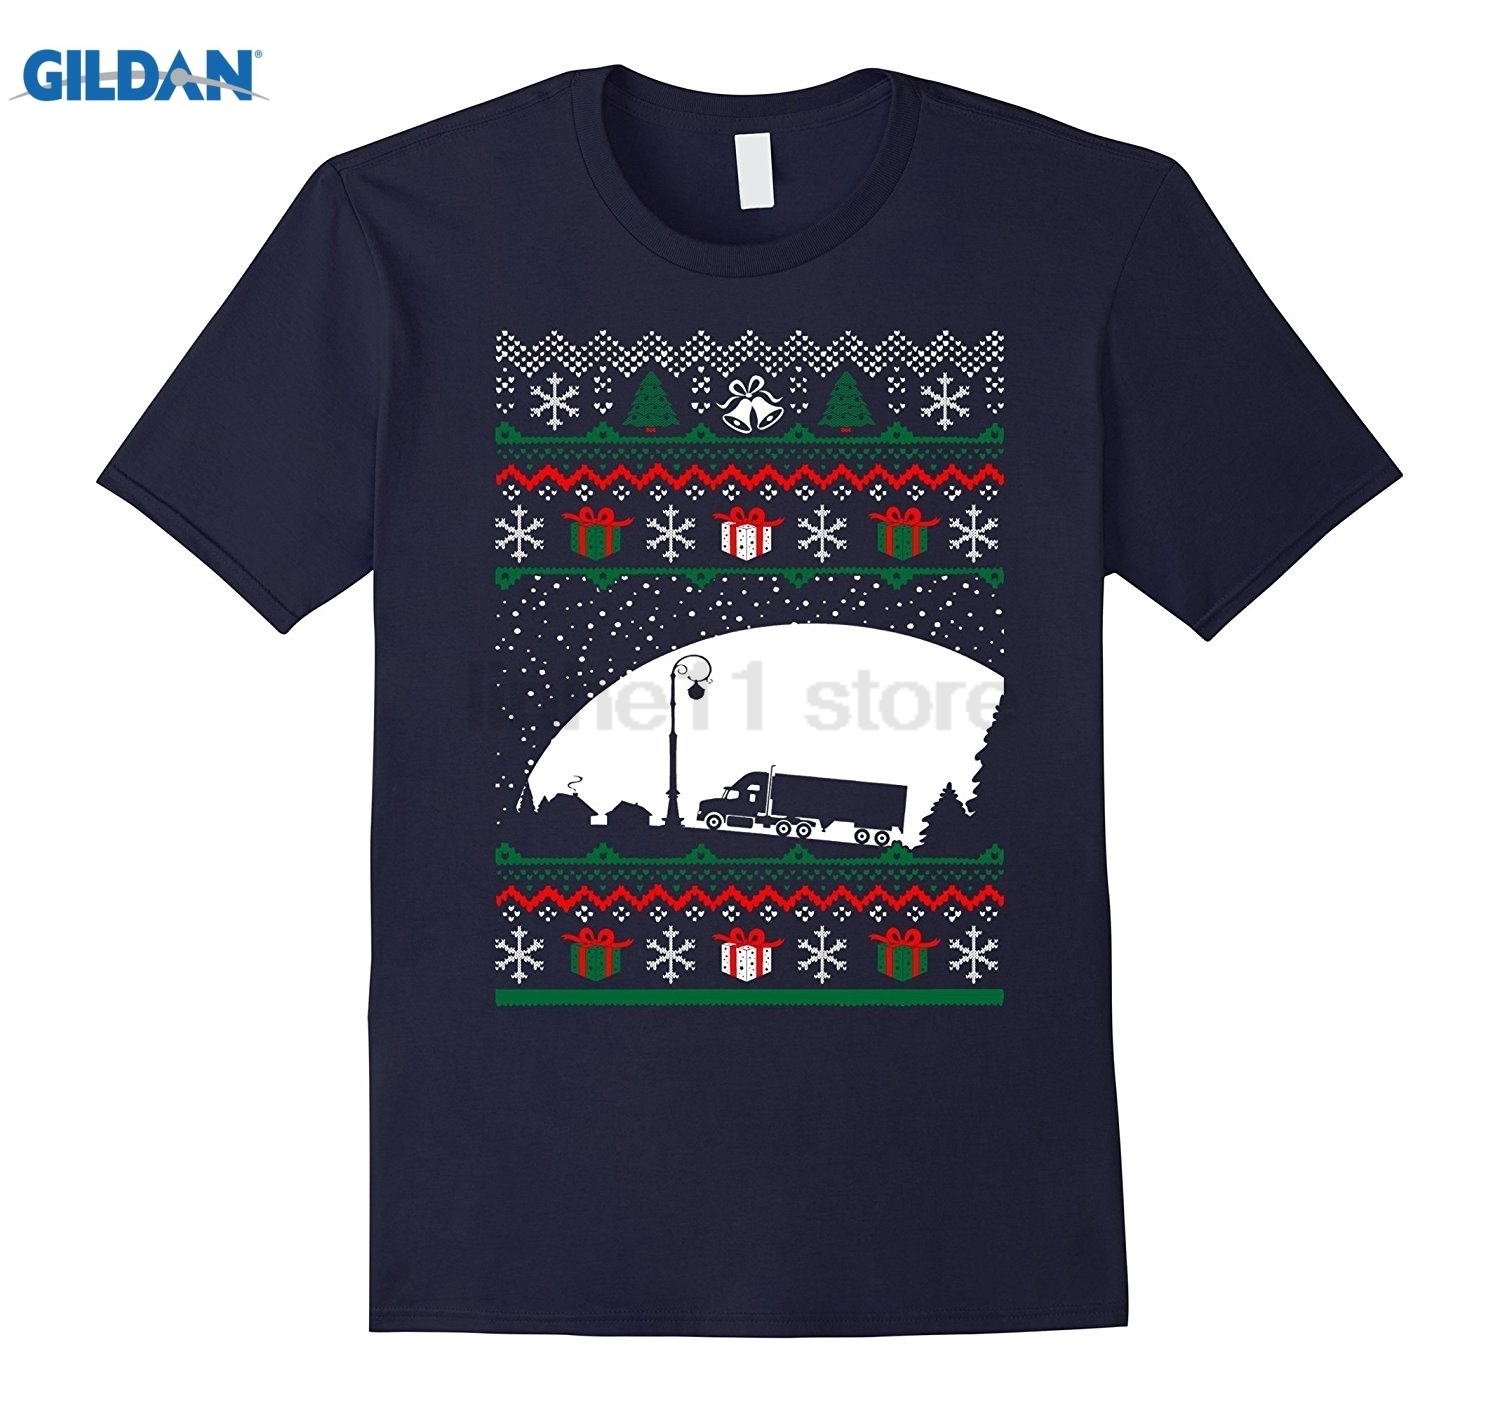 GILDAN Christmas Ugly Sweater Truck Driver Profession Tshirt Womens T-shirt